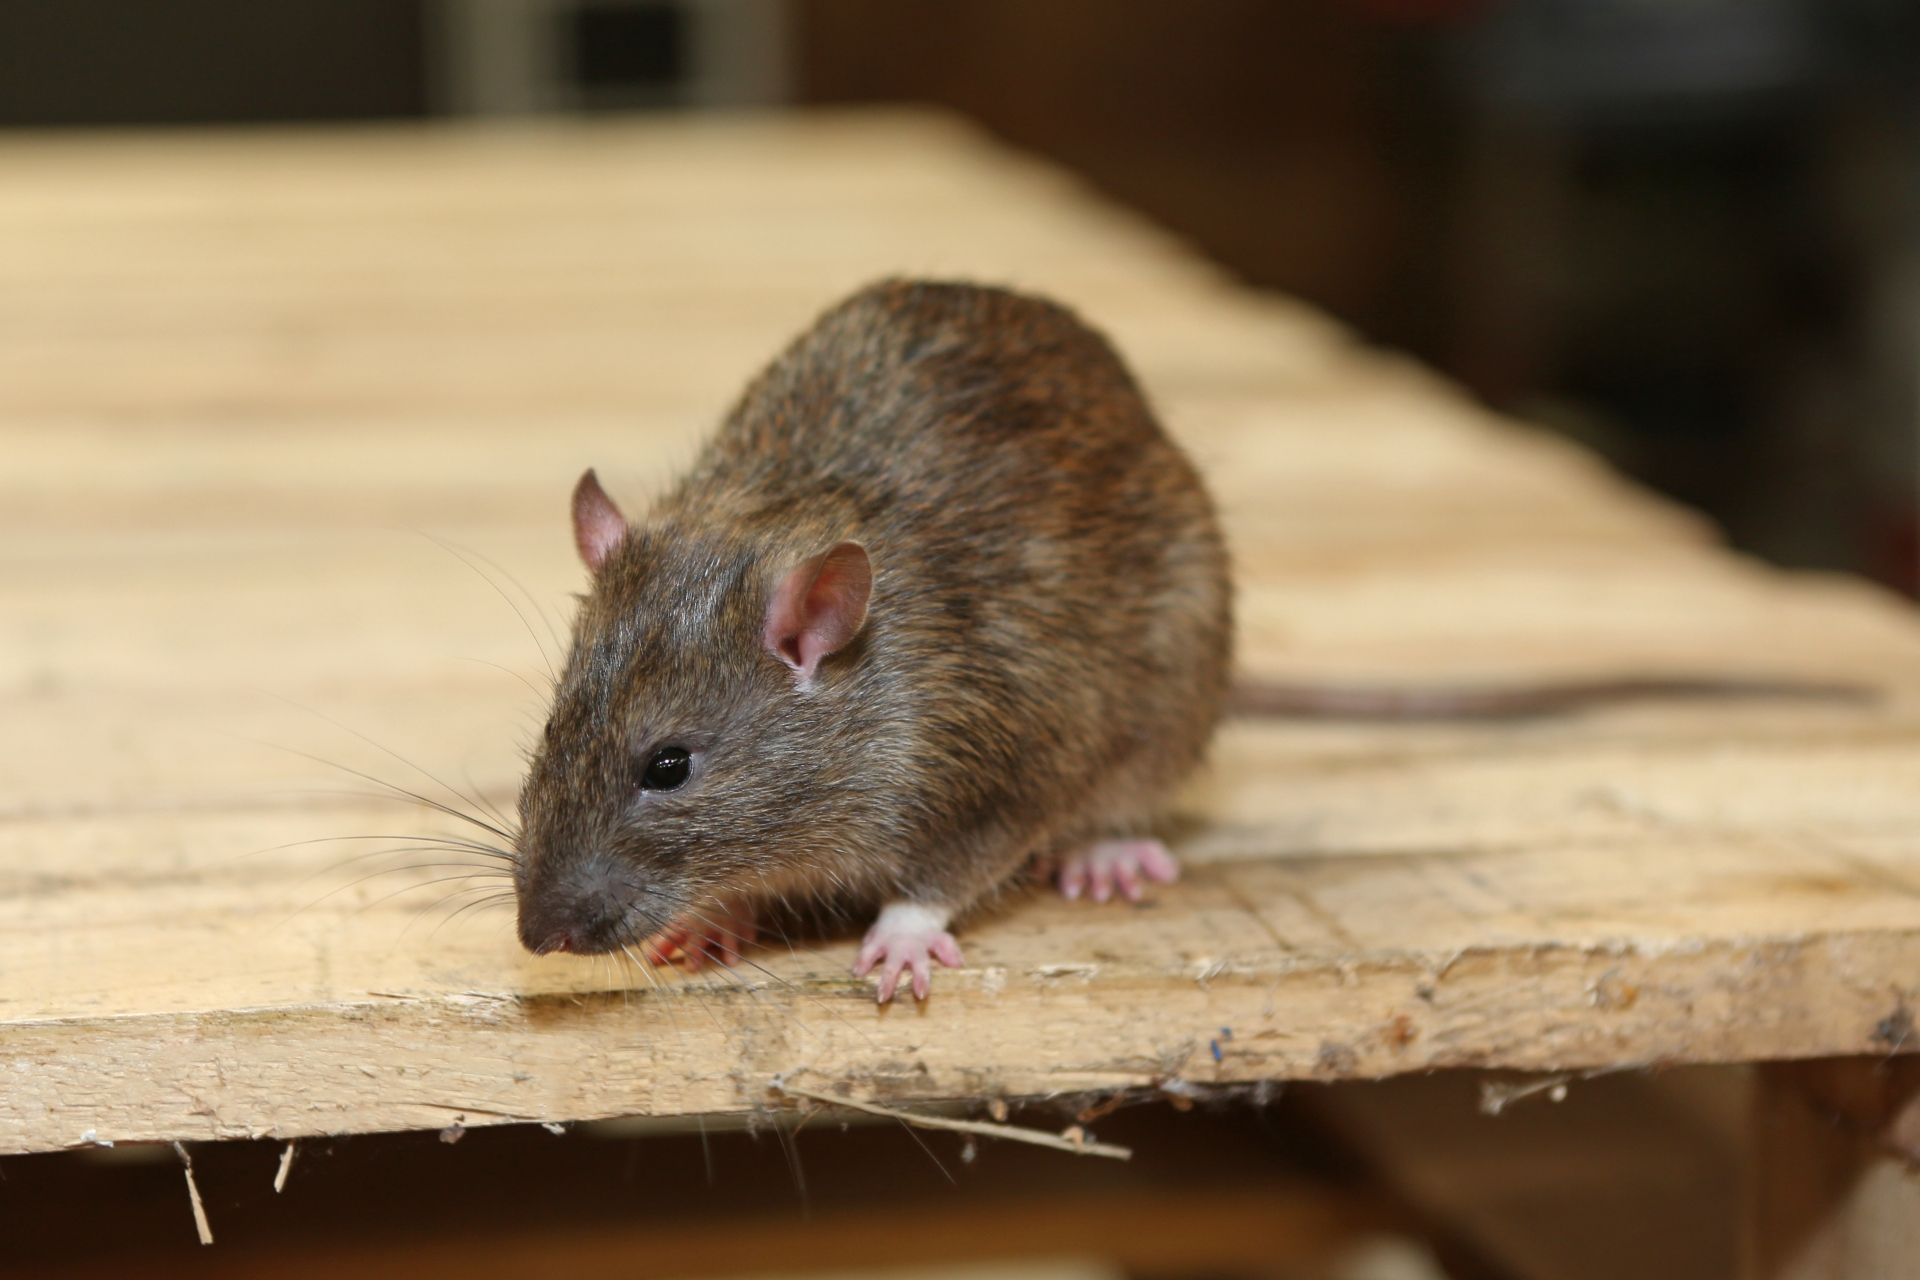 Rat Control, Pest Control in Woolwich, SE18. Call Now 020 8166 9746